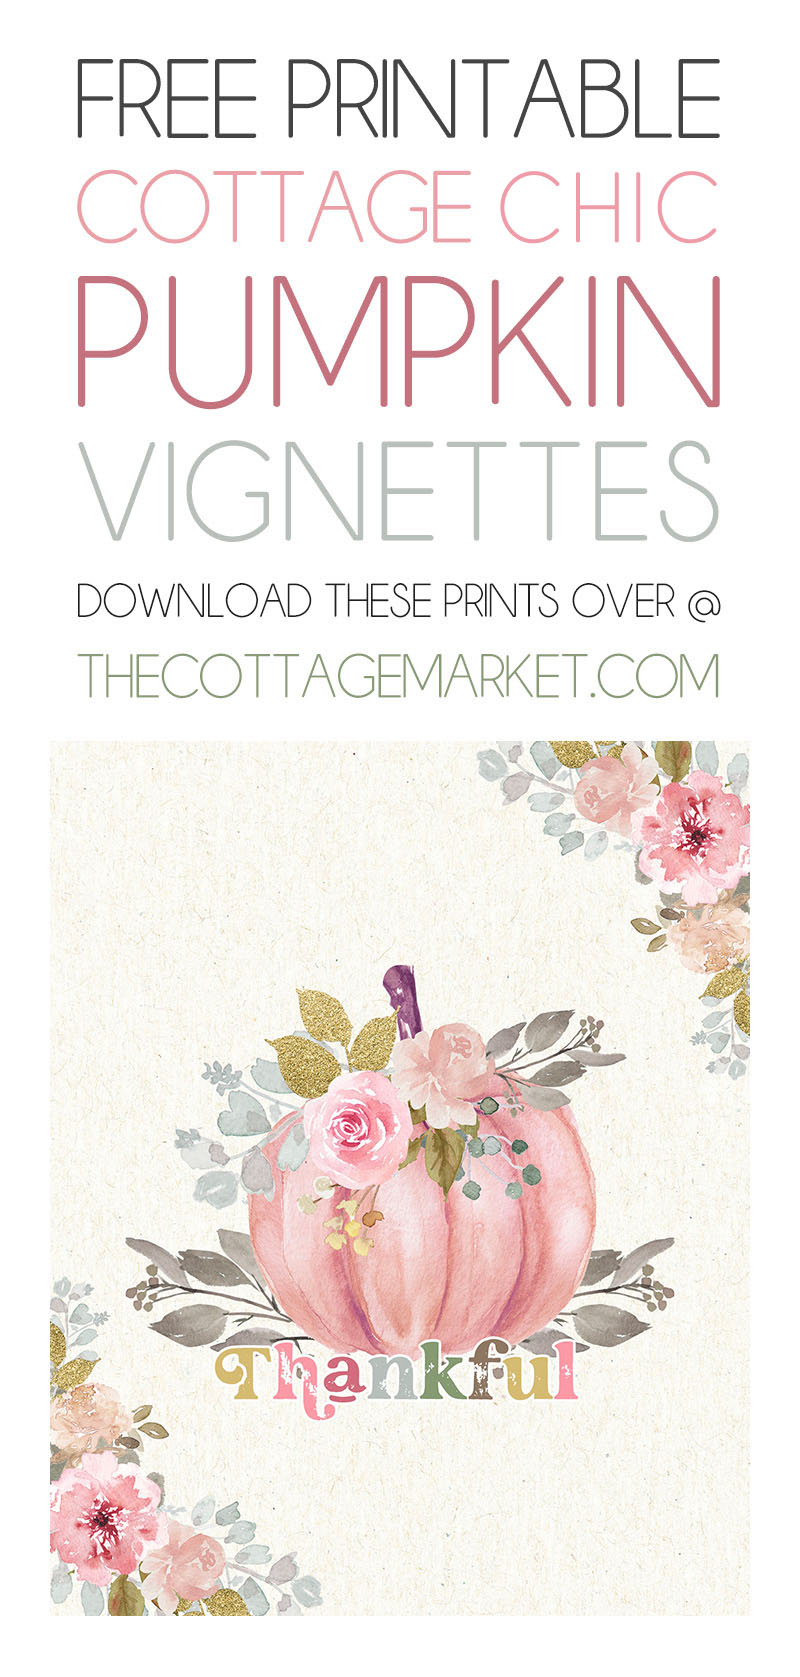 Come and checkout these Adorable Free Printable Cottagecore Pumpkin Vignettes that put a little Pink into your Fall!